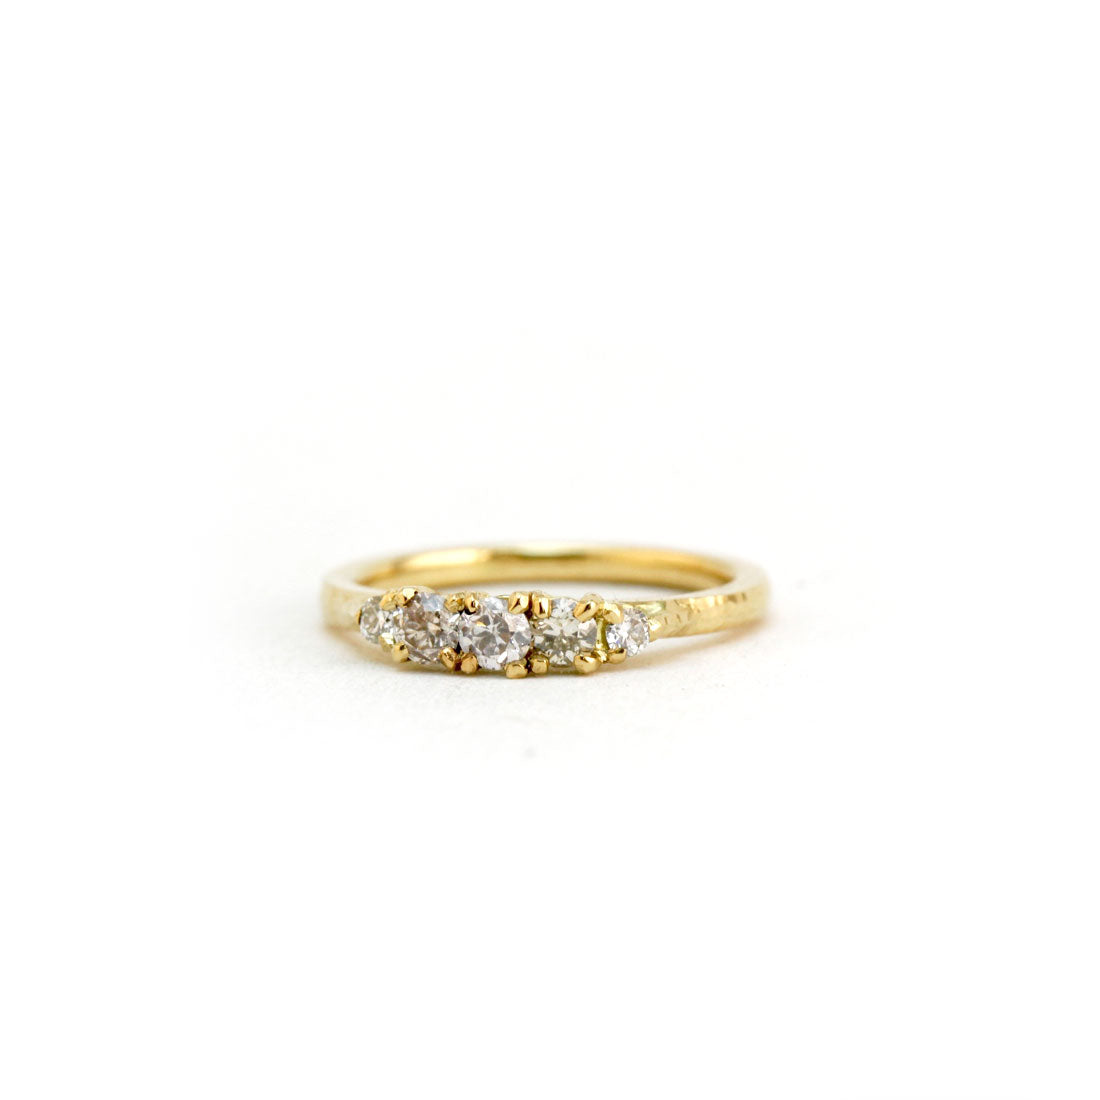 Fine champagne diamond wedding cluster ring